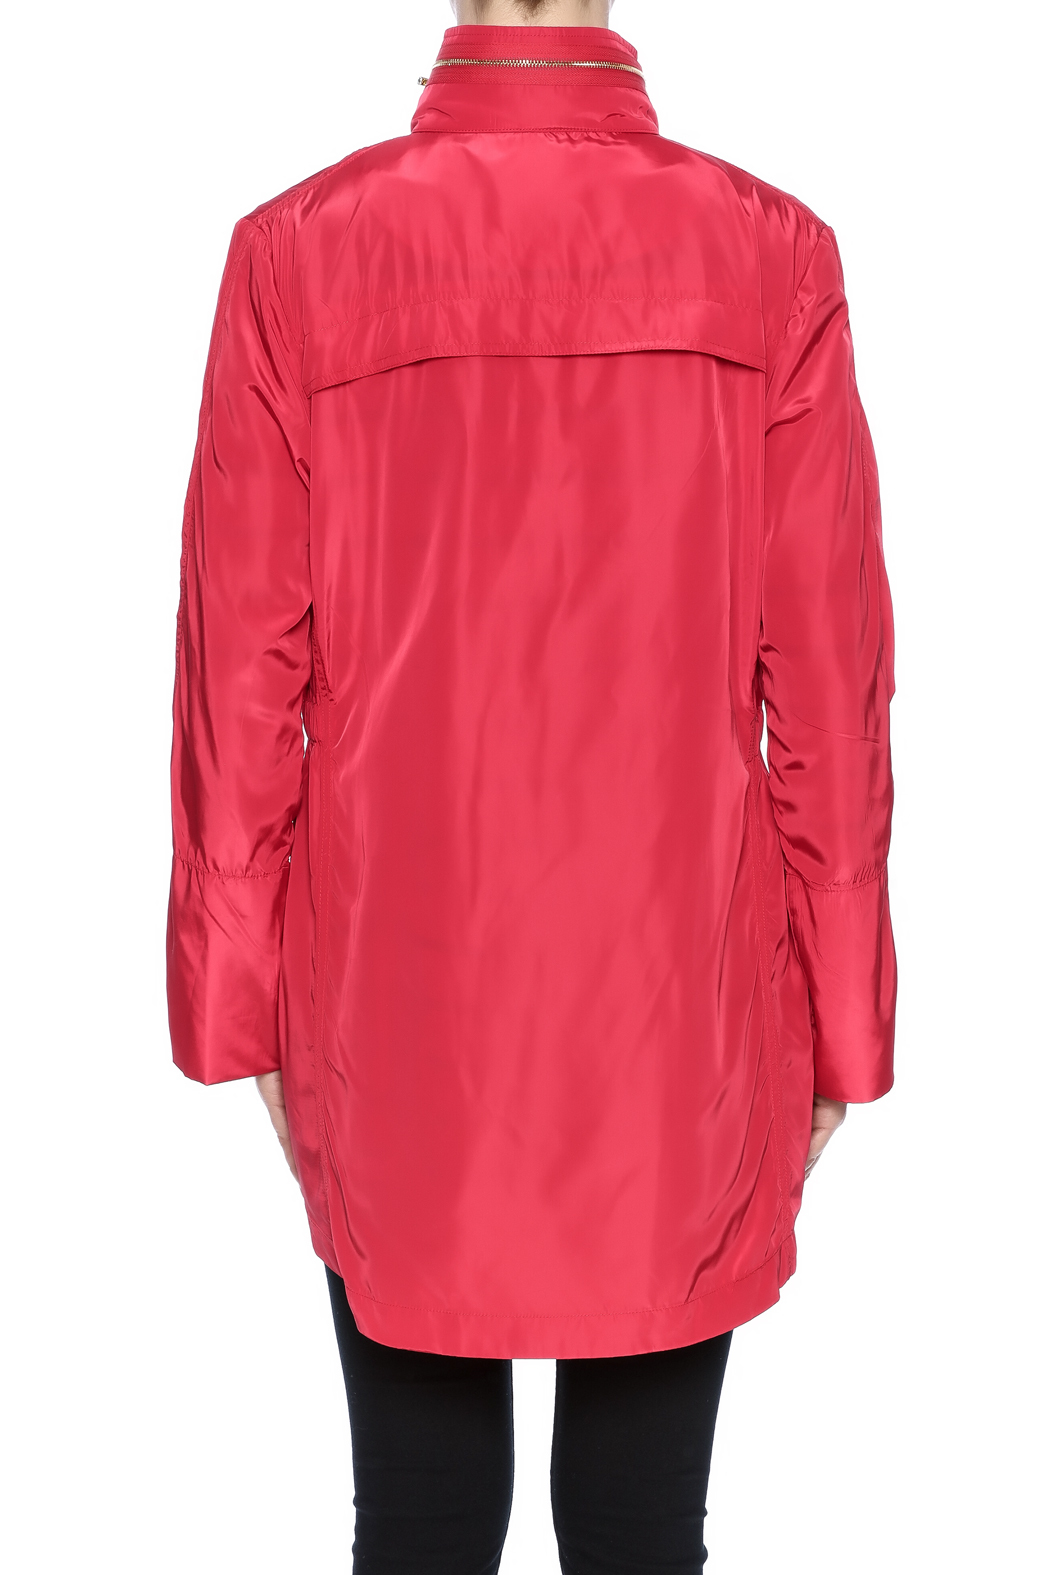 Ciao Milano Red Hooded Jacket - Back Cropped Image